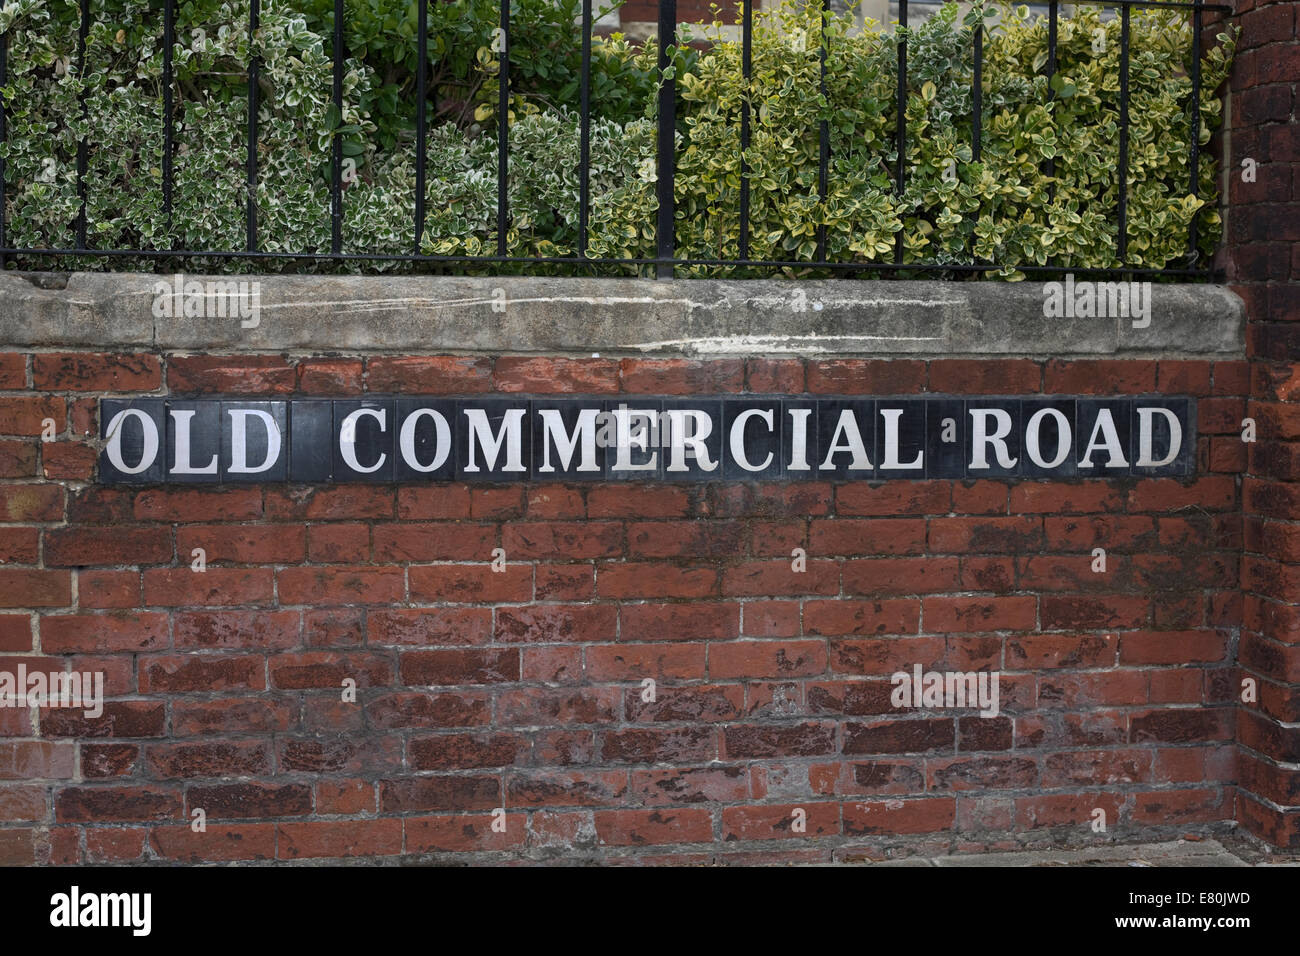 road name of Old Commercial Road set in brick wall with black metal railing above - Stock Image